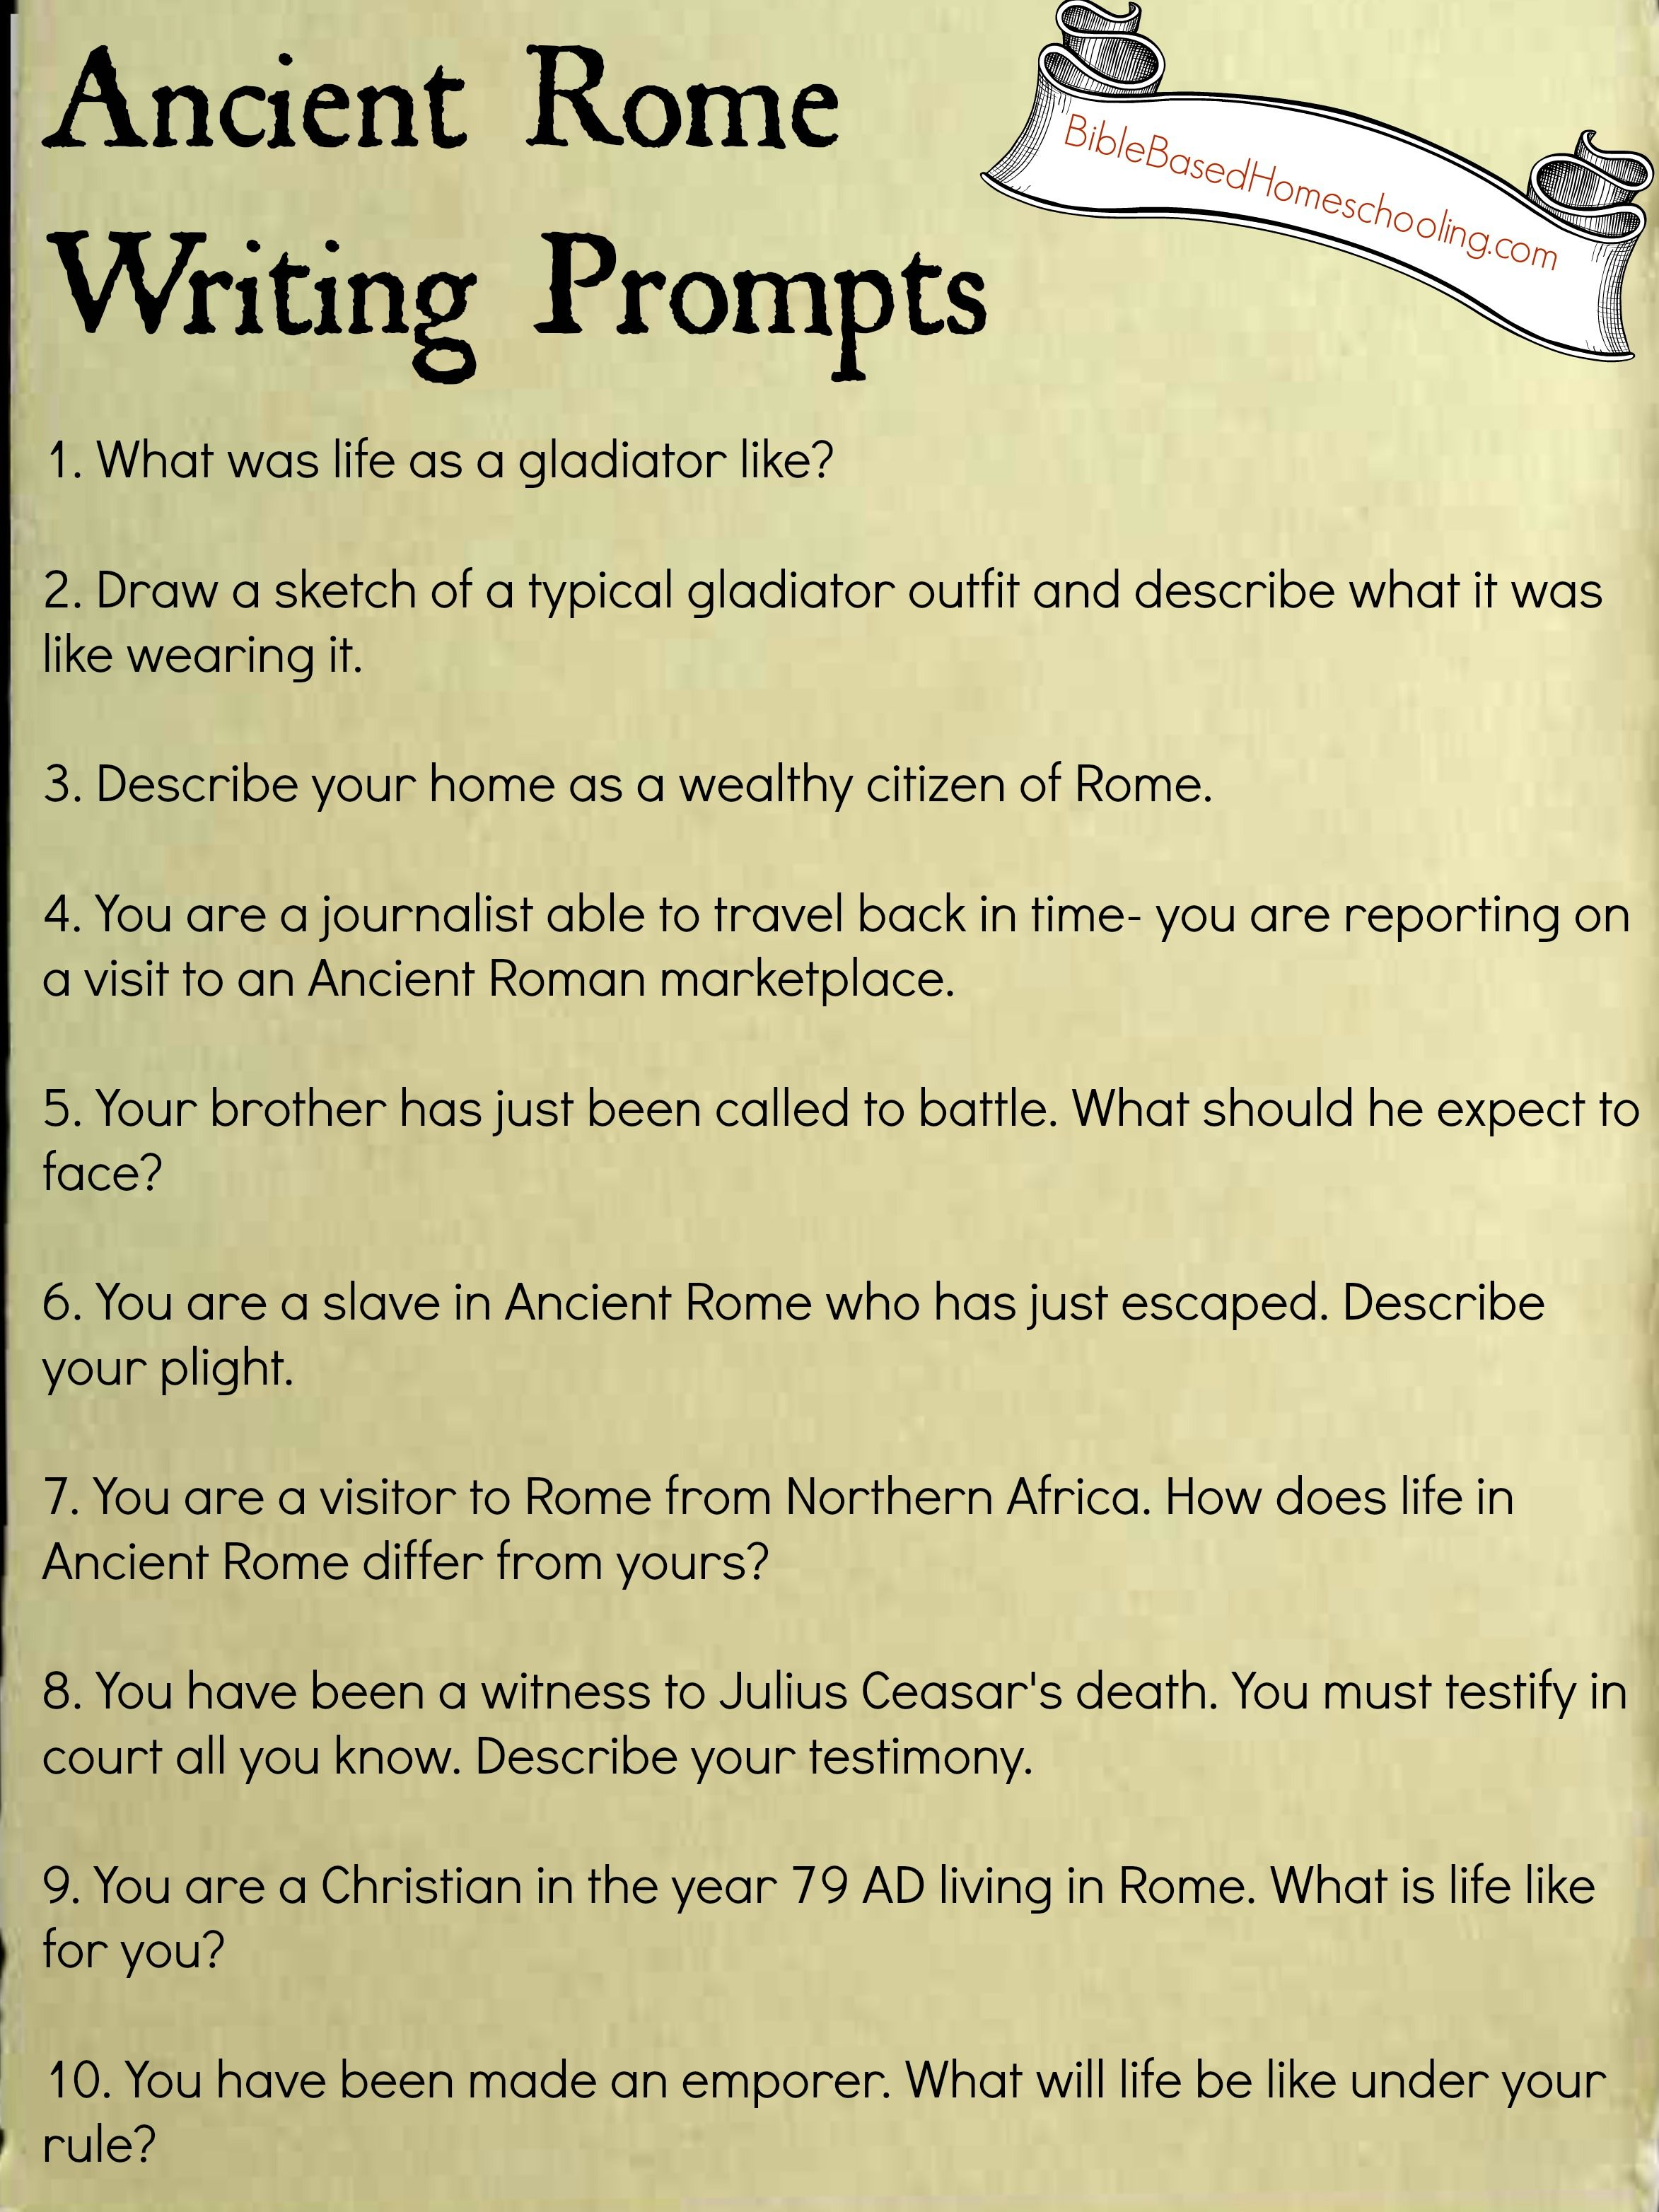 Free Ancient Rome Writing Prompts Printable